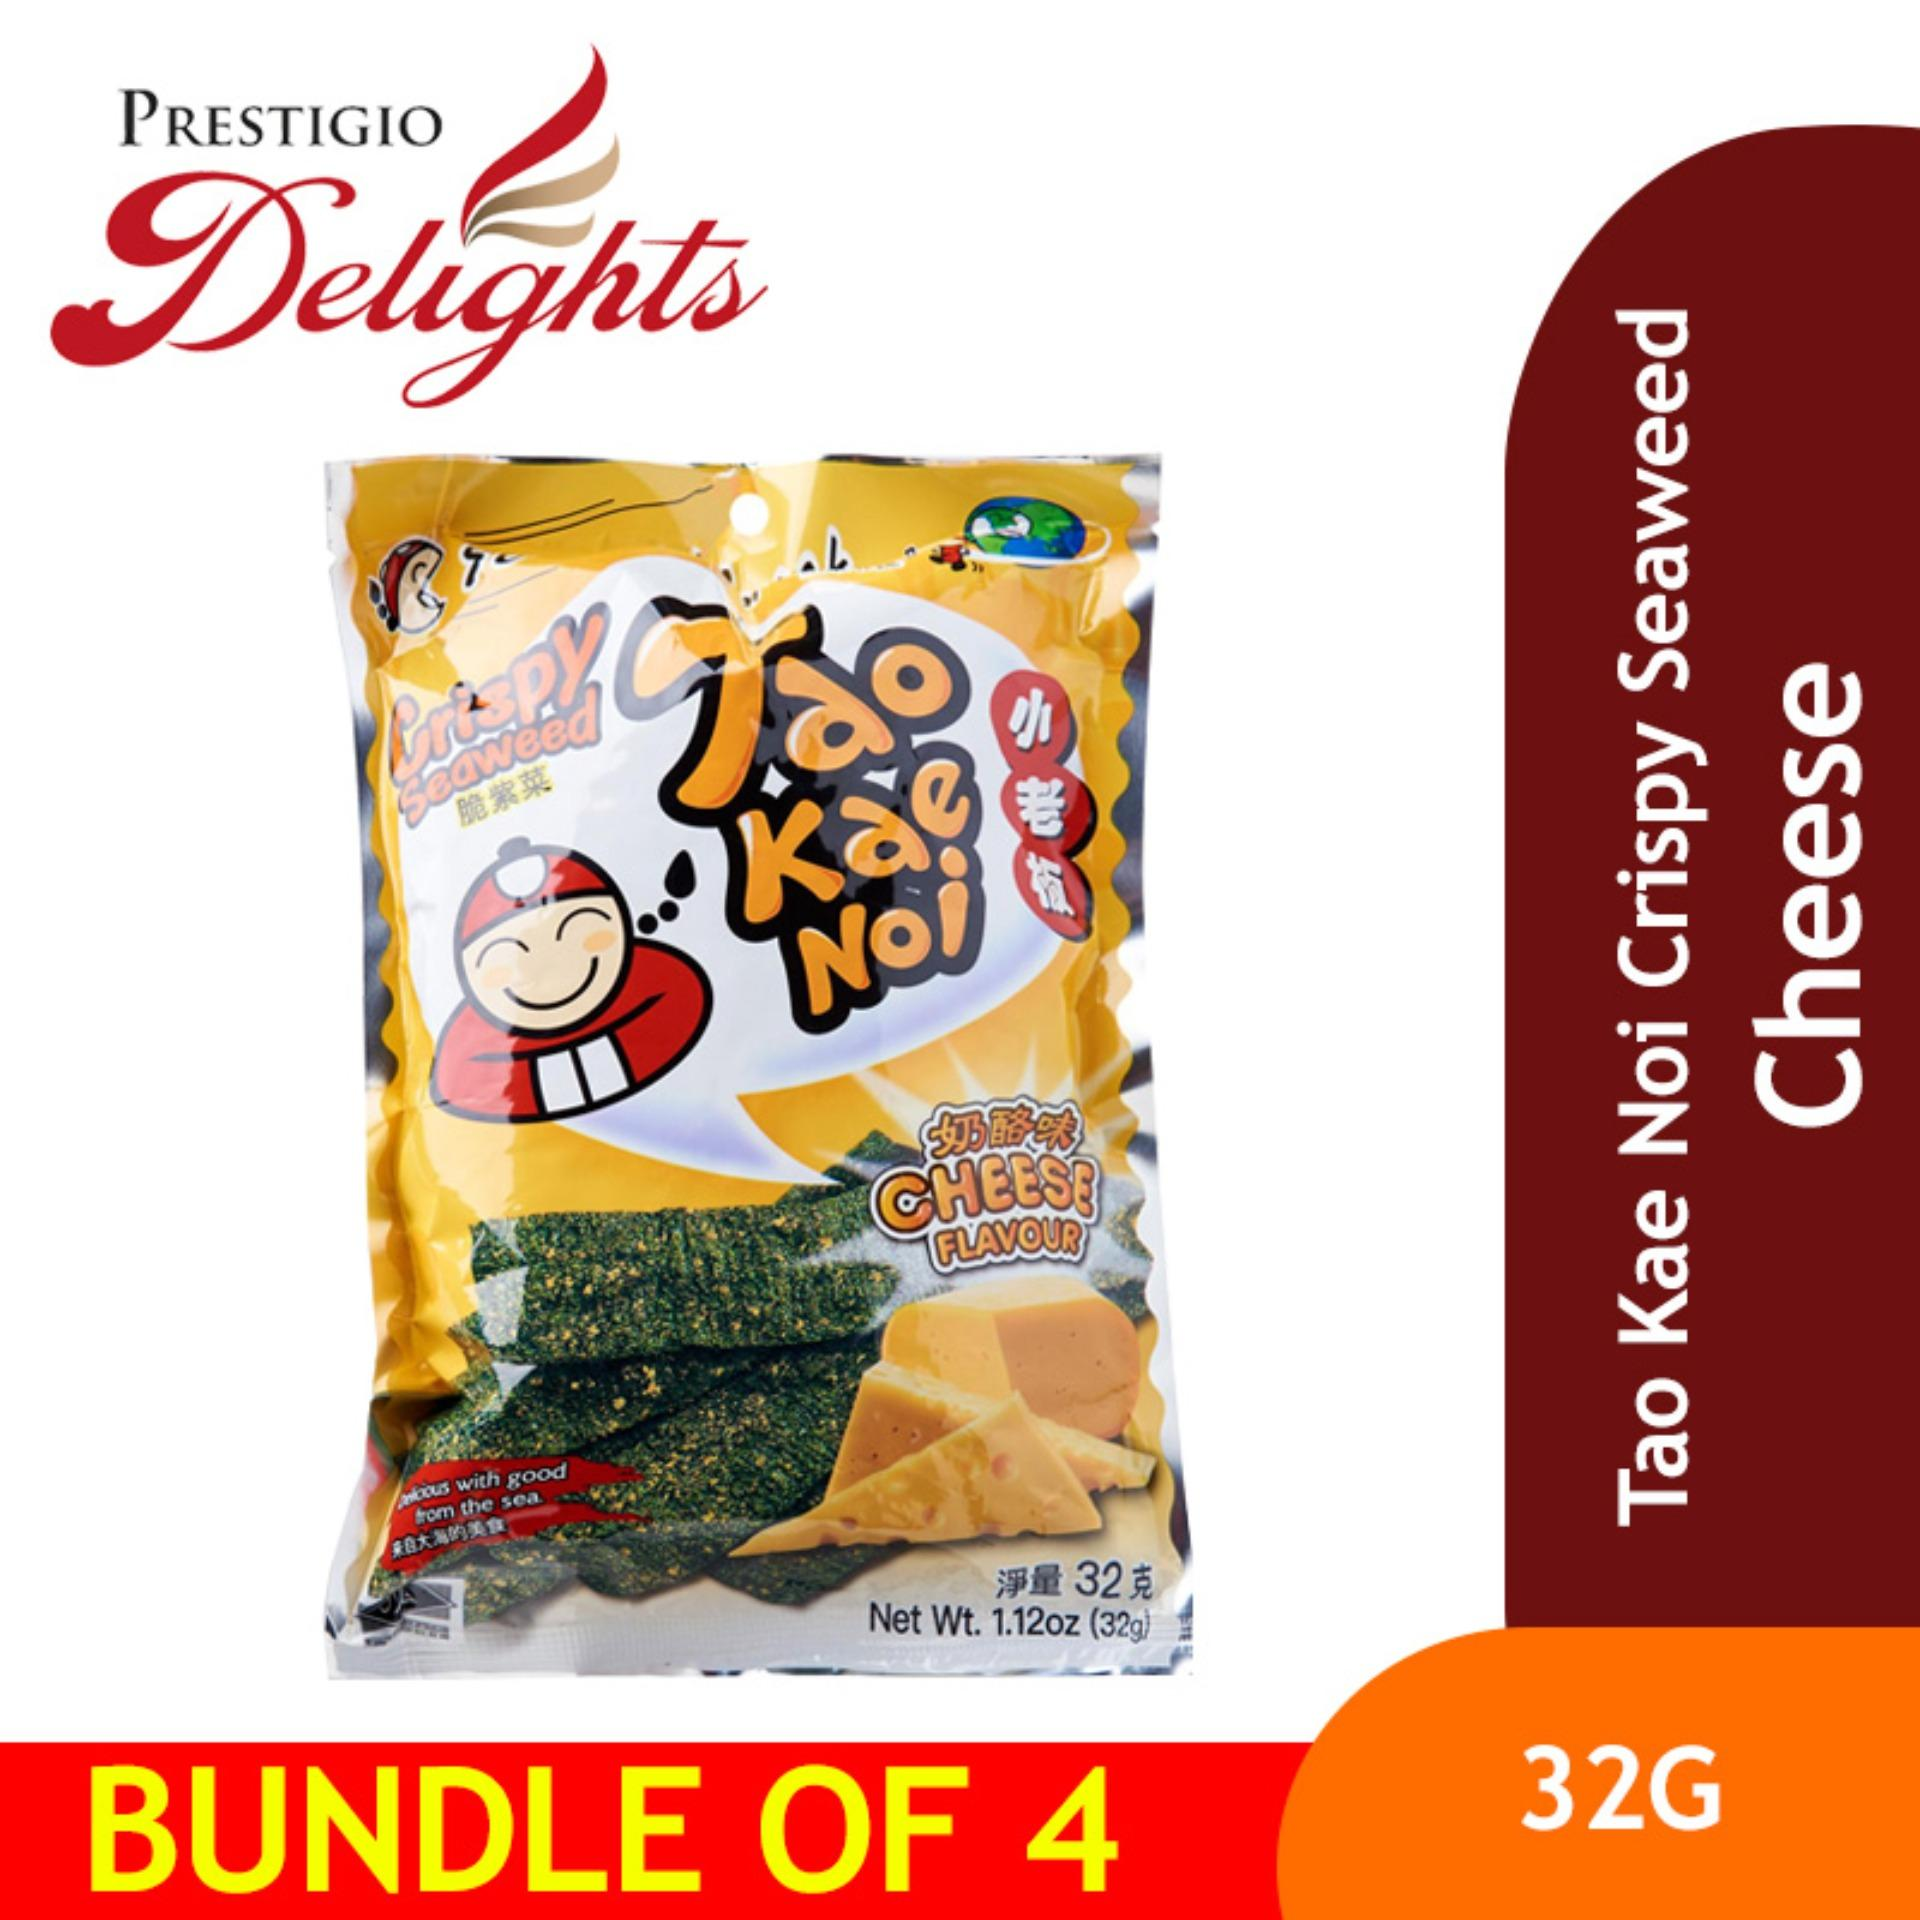 Tao Kae Noi Crispy Seaweed - 32g Cheese Bundle Of 4 By Prestigio Delights.